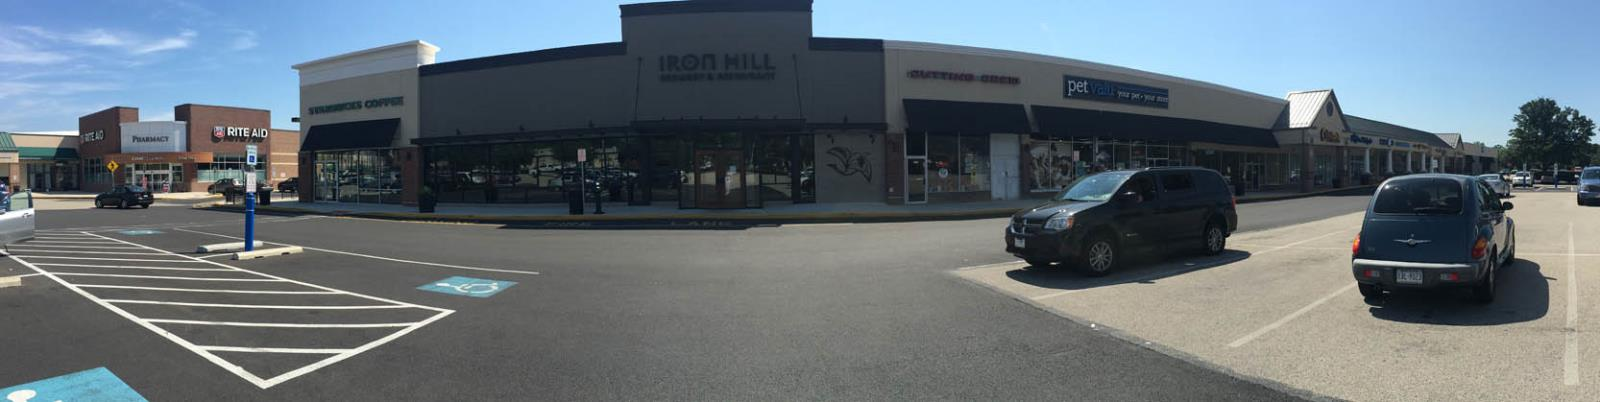 Hungtindon Valley shopping center panorama